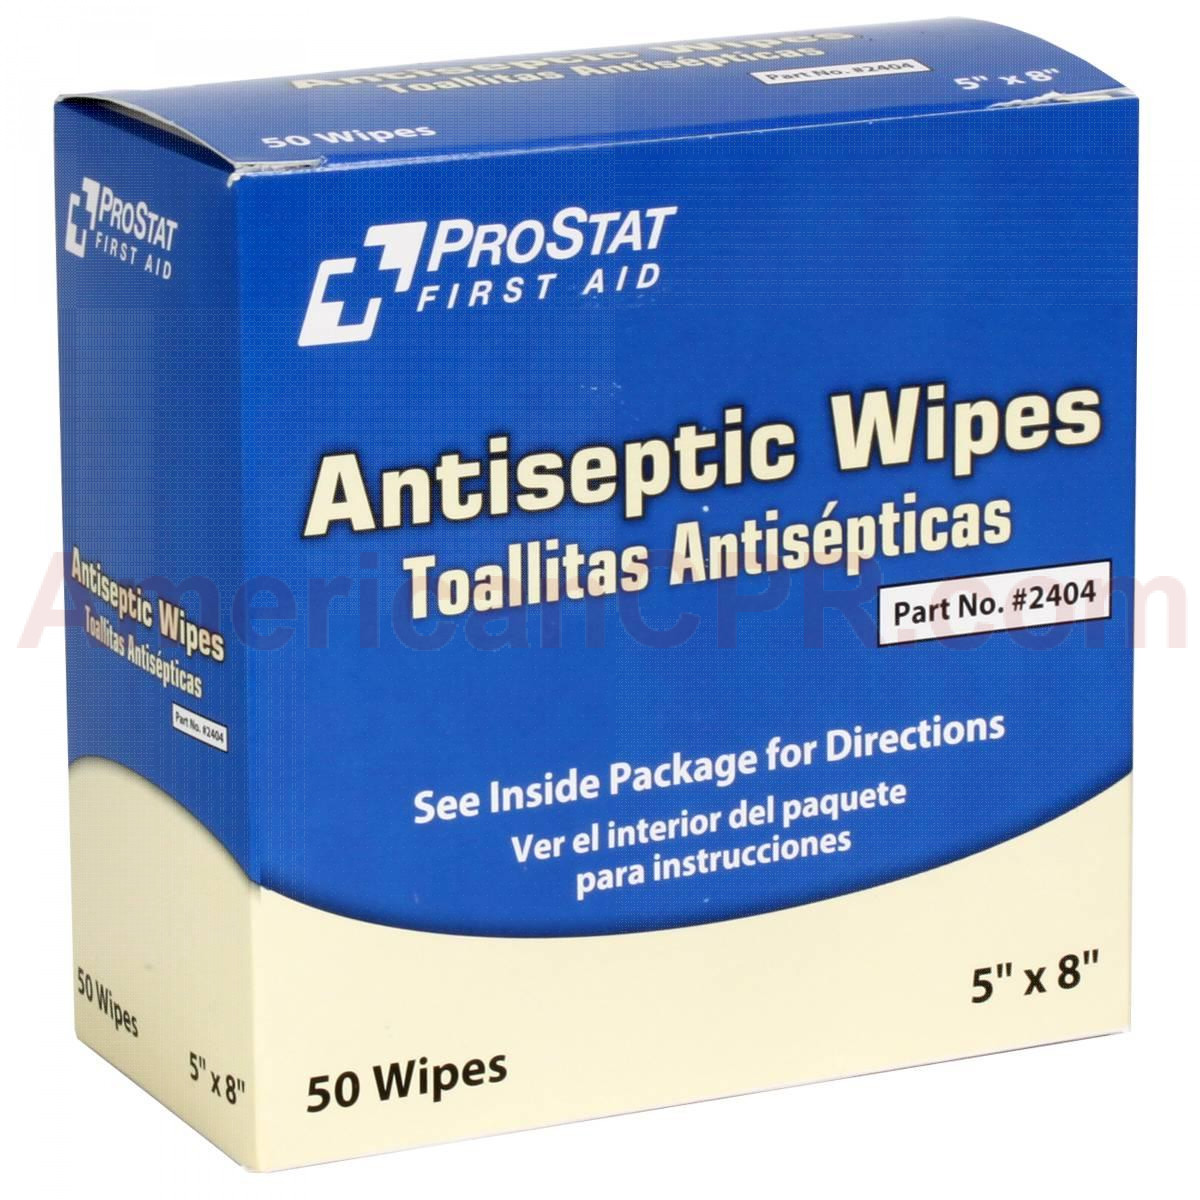 Antiseptic Wipes, 50 Per Box, Prostat First Aid